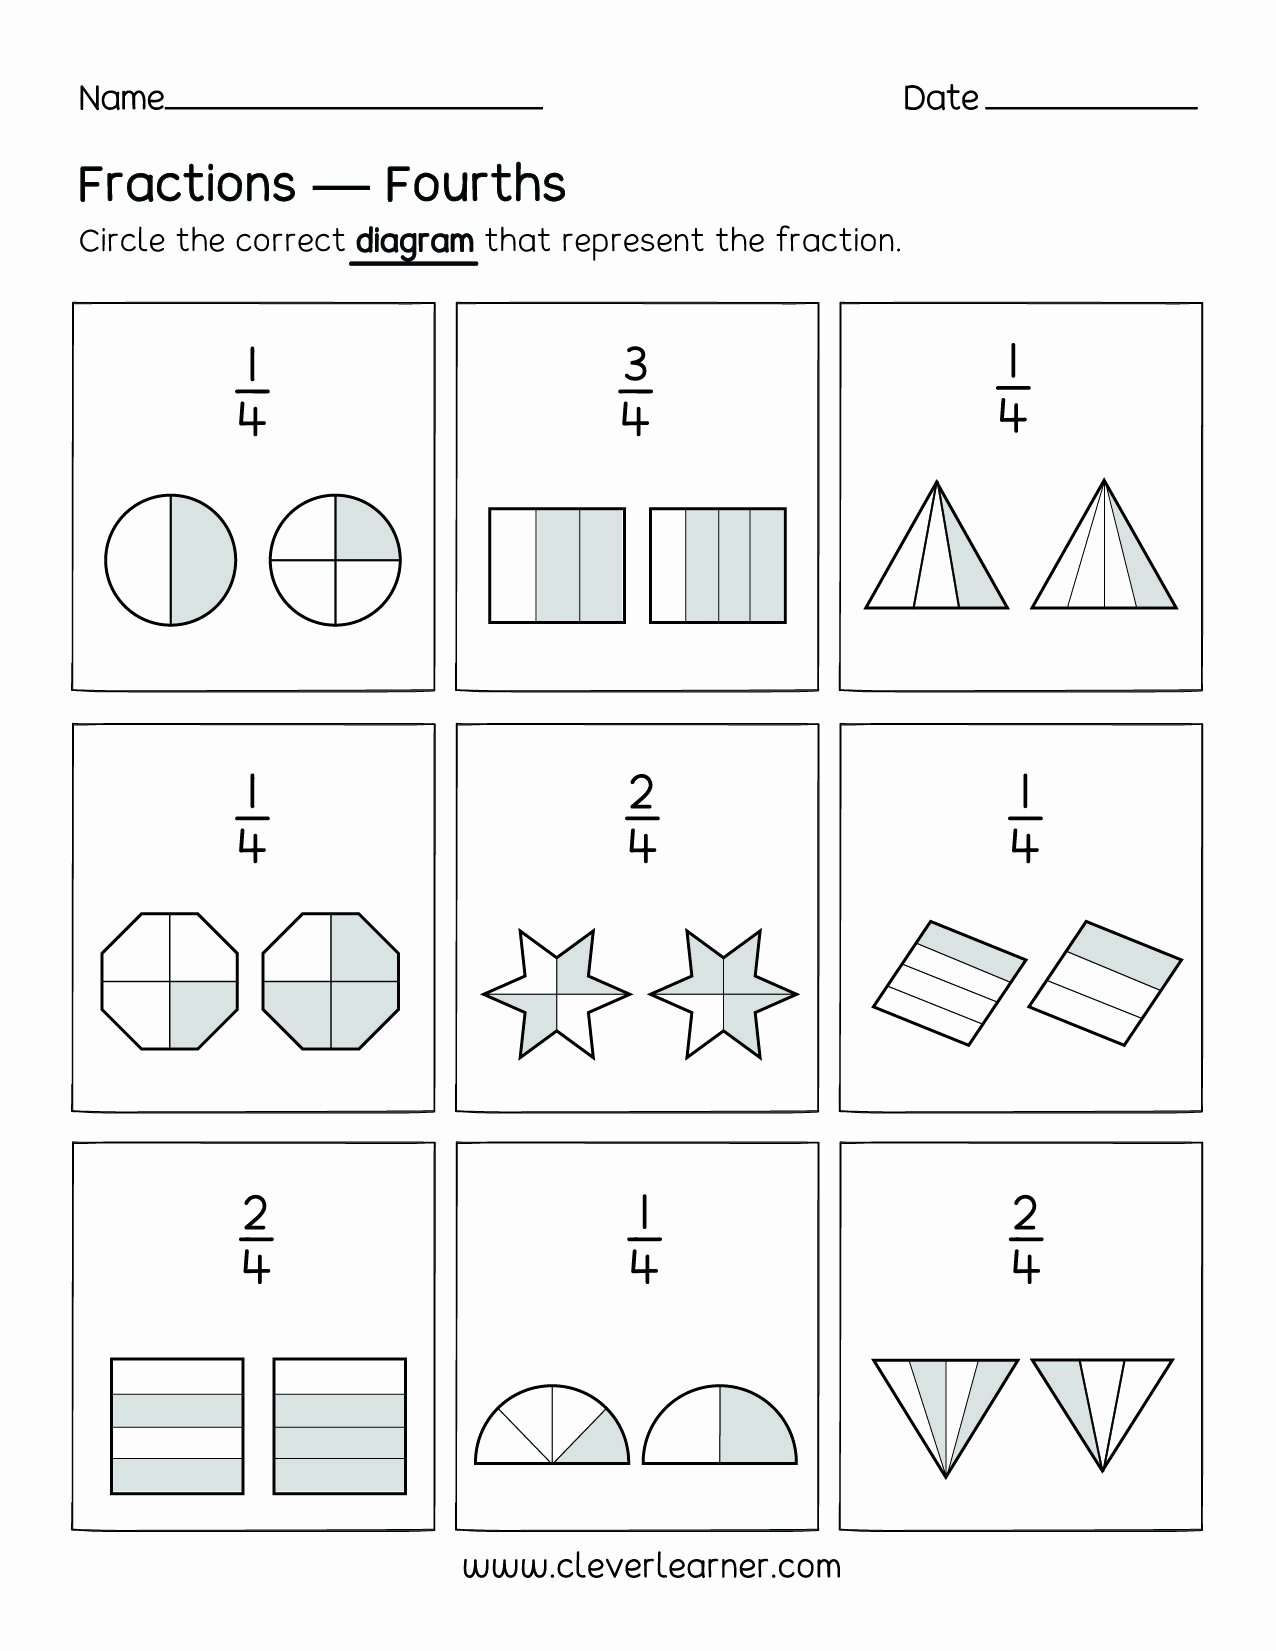 Quarter Worksheets for Preschoolers Best Of Coloring Fraction Sheets Excelent Fractions Quarters Fun